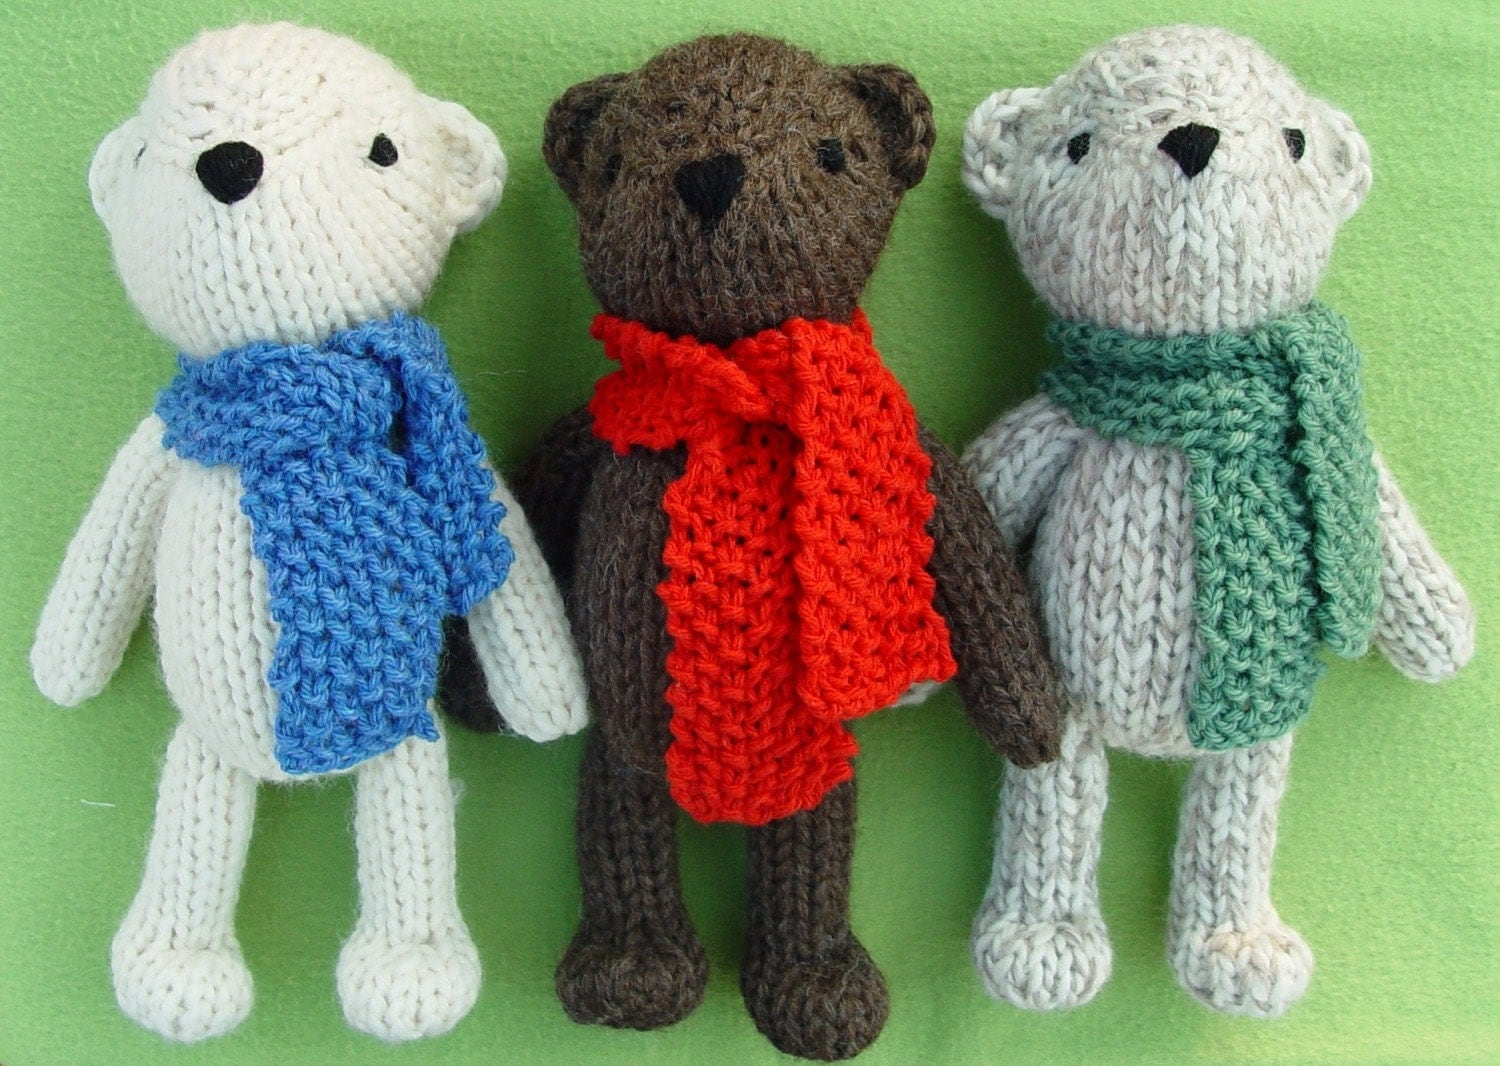 Knitting Pattern For All In One Teddy Bear : Teddy bear patterns - Lookup BeforeBuying